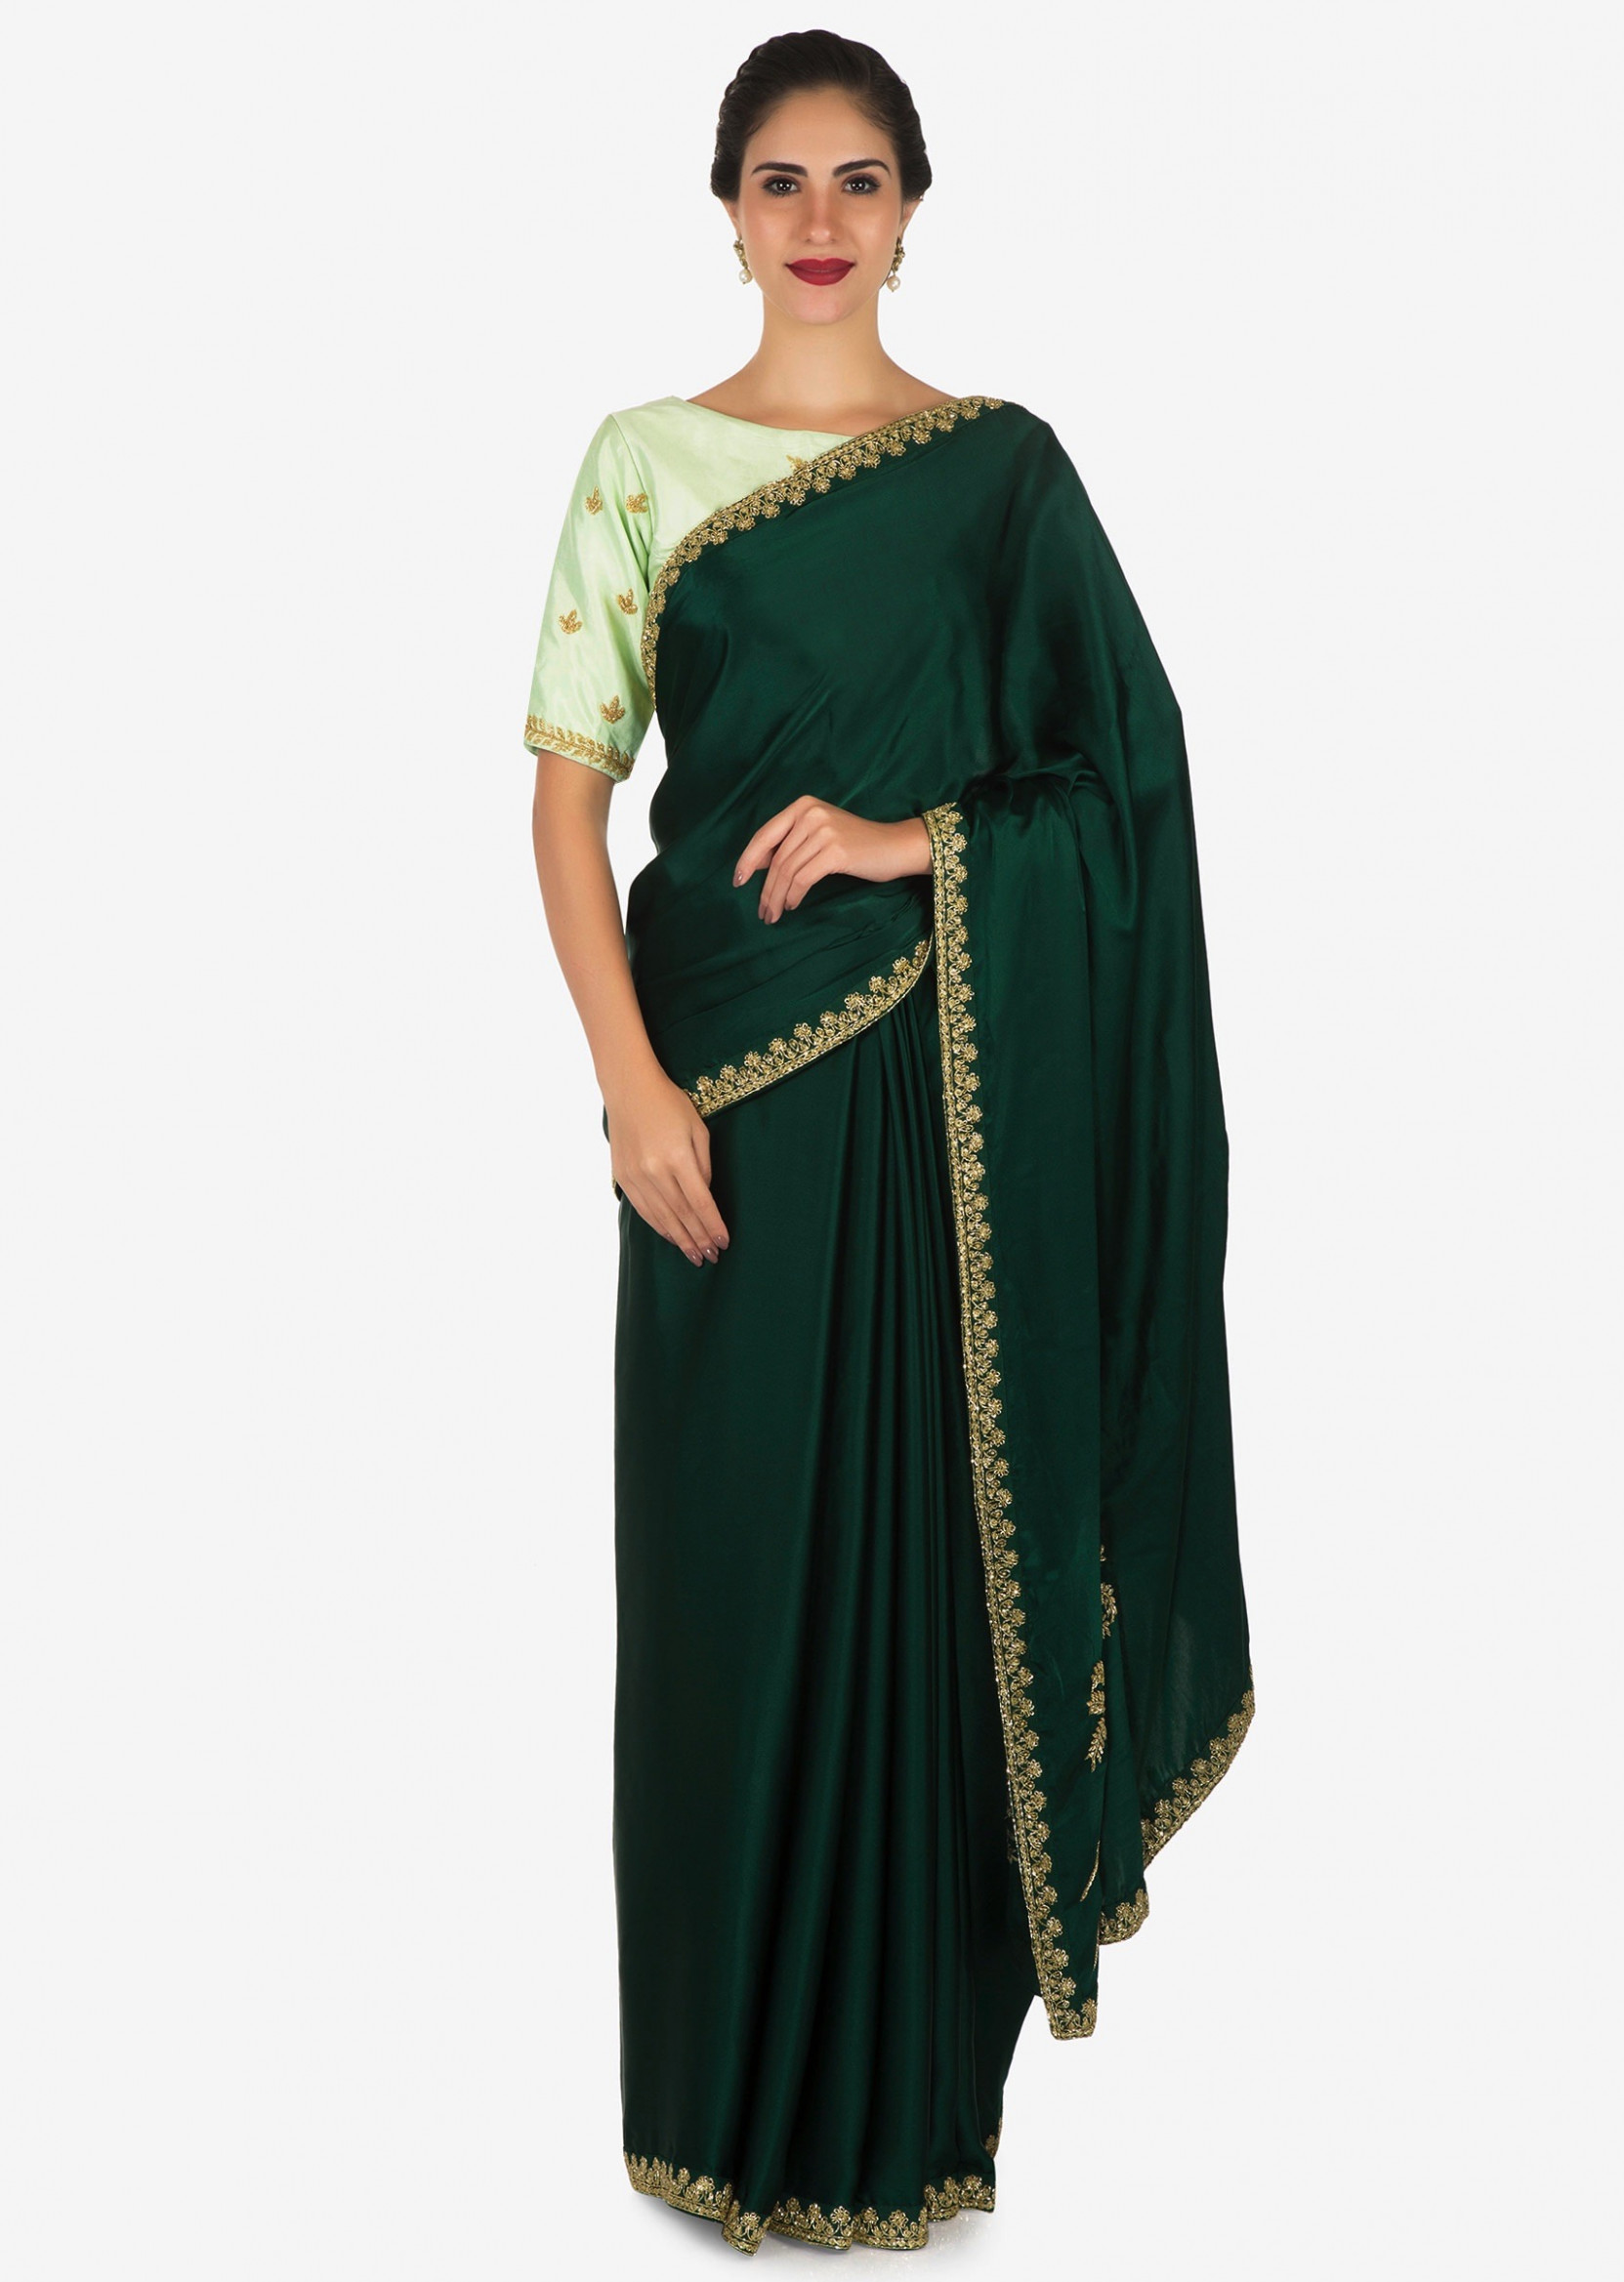 Buy Bottle Green Saree With Mustard Blouse Carved In Heavy